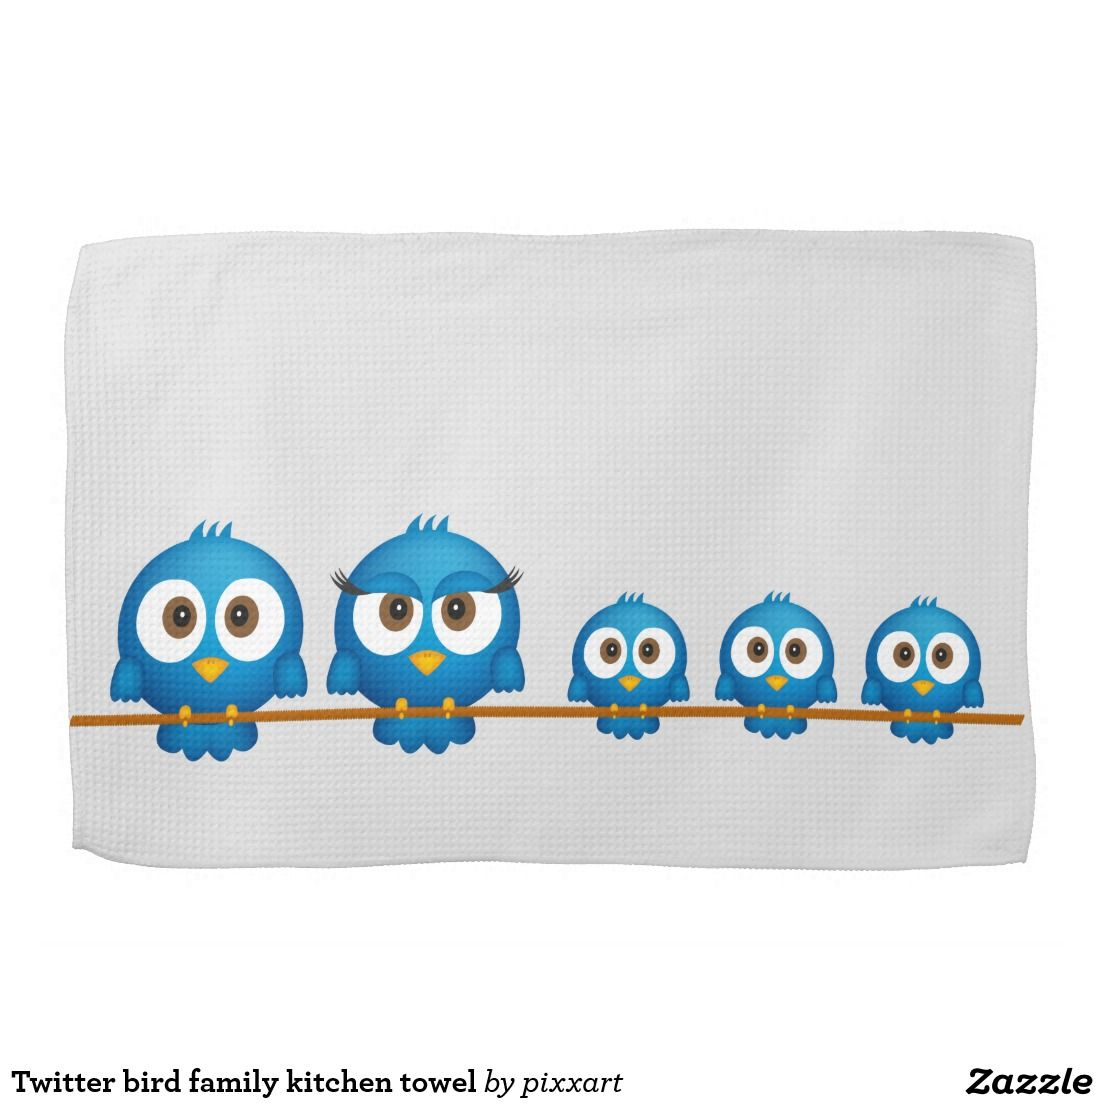 Twitter bird family kitchen towel